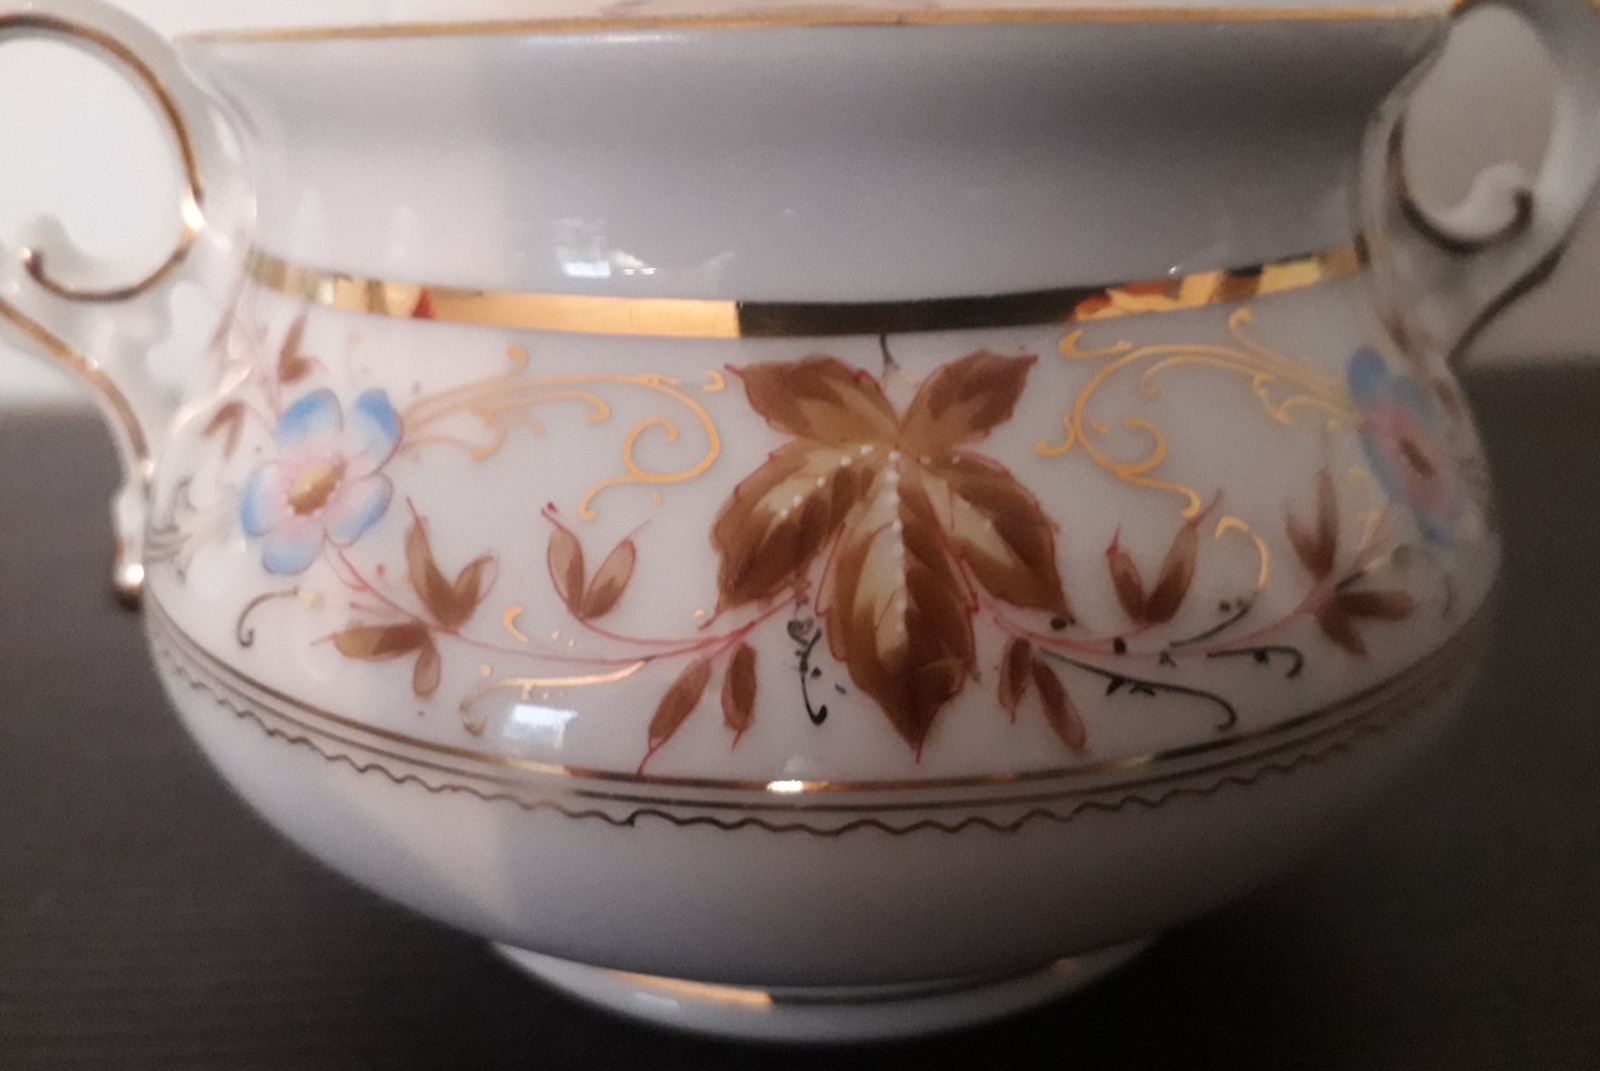 Waldenburg - Altwasser sugar bowl with handpainted flowers and leaves